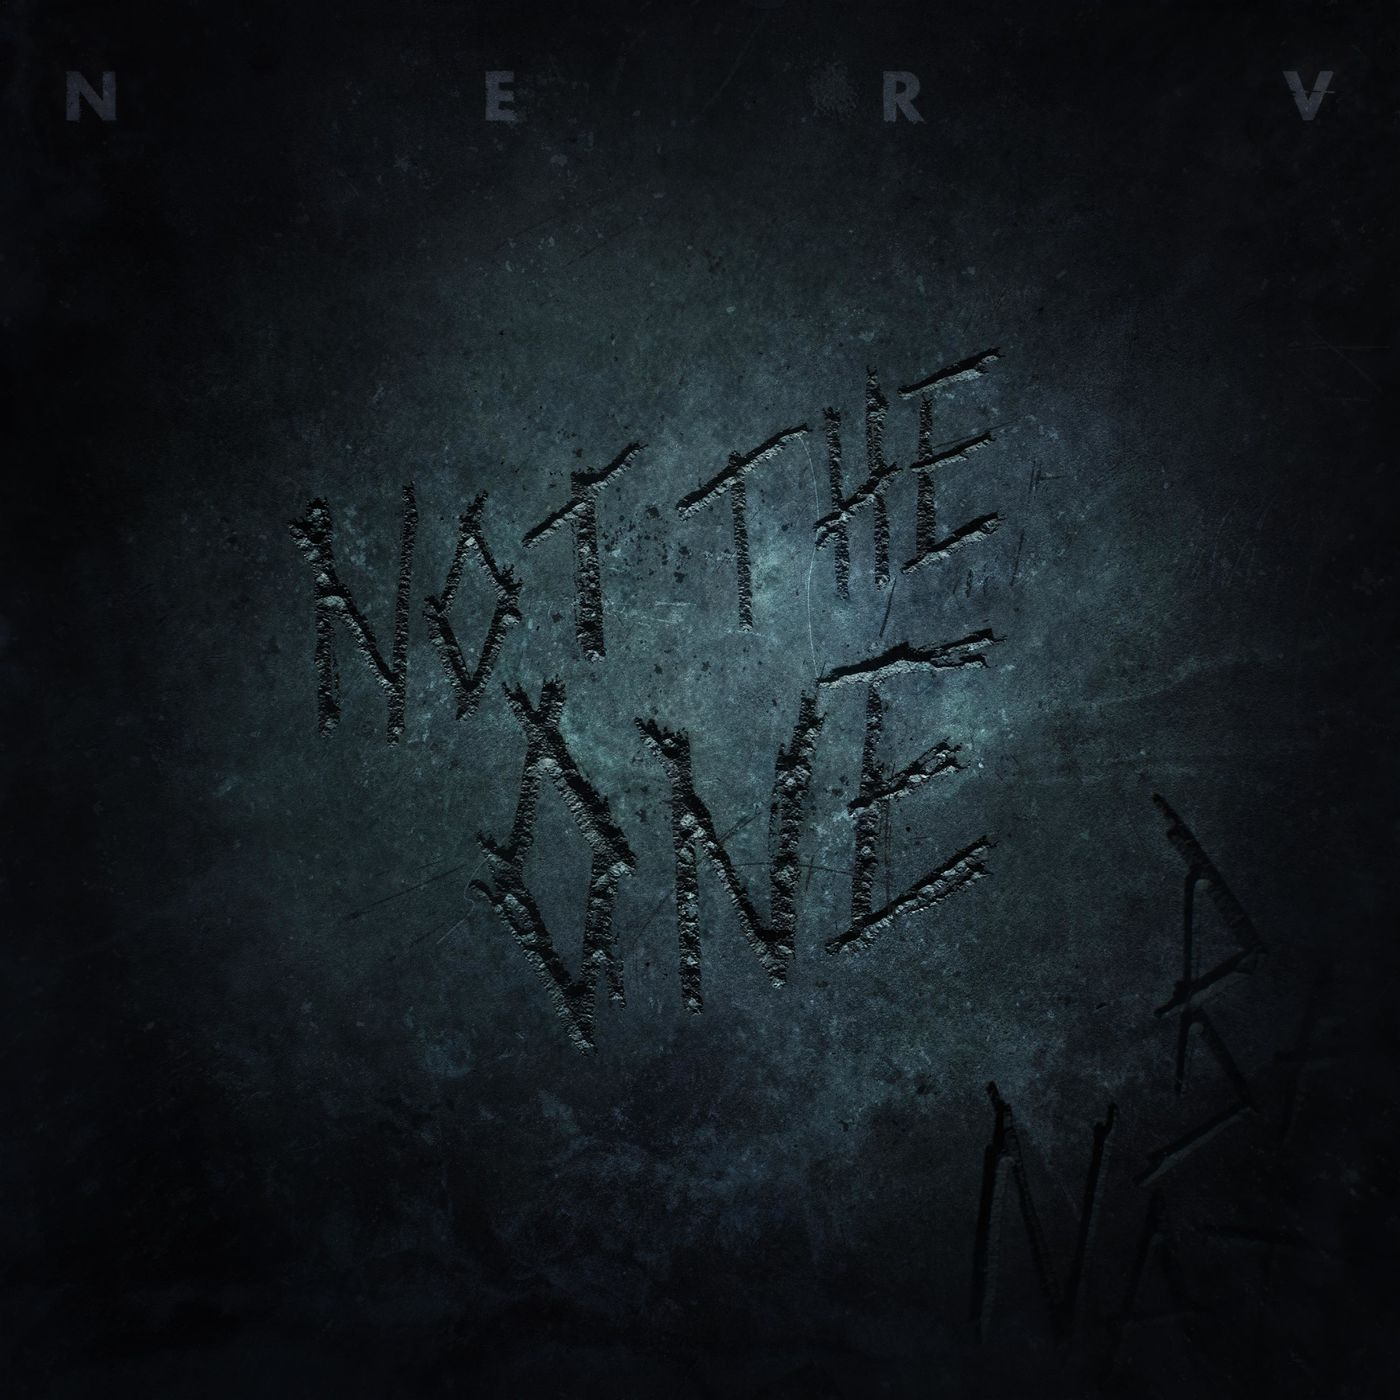 Nerv - Not the One [single] (2021)